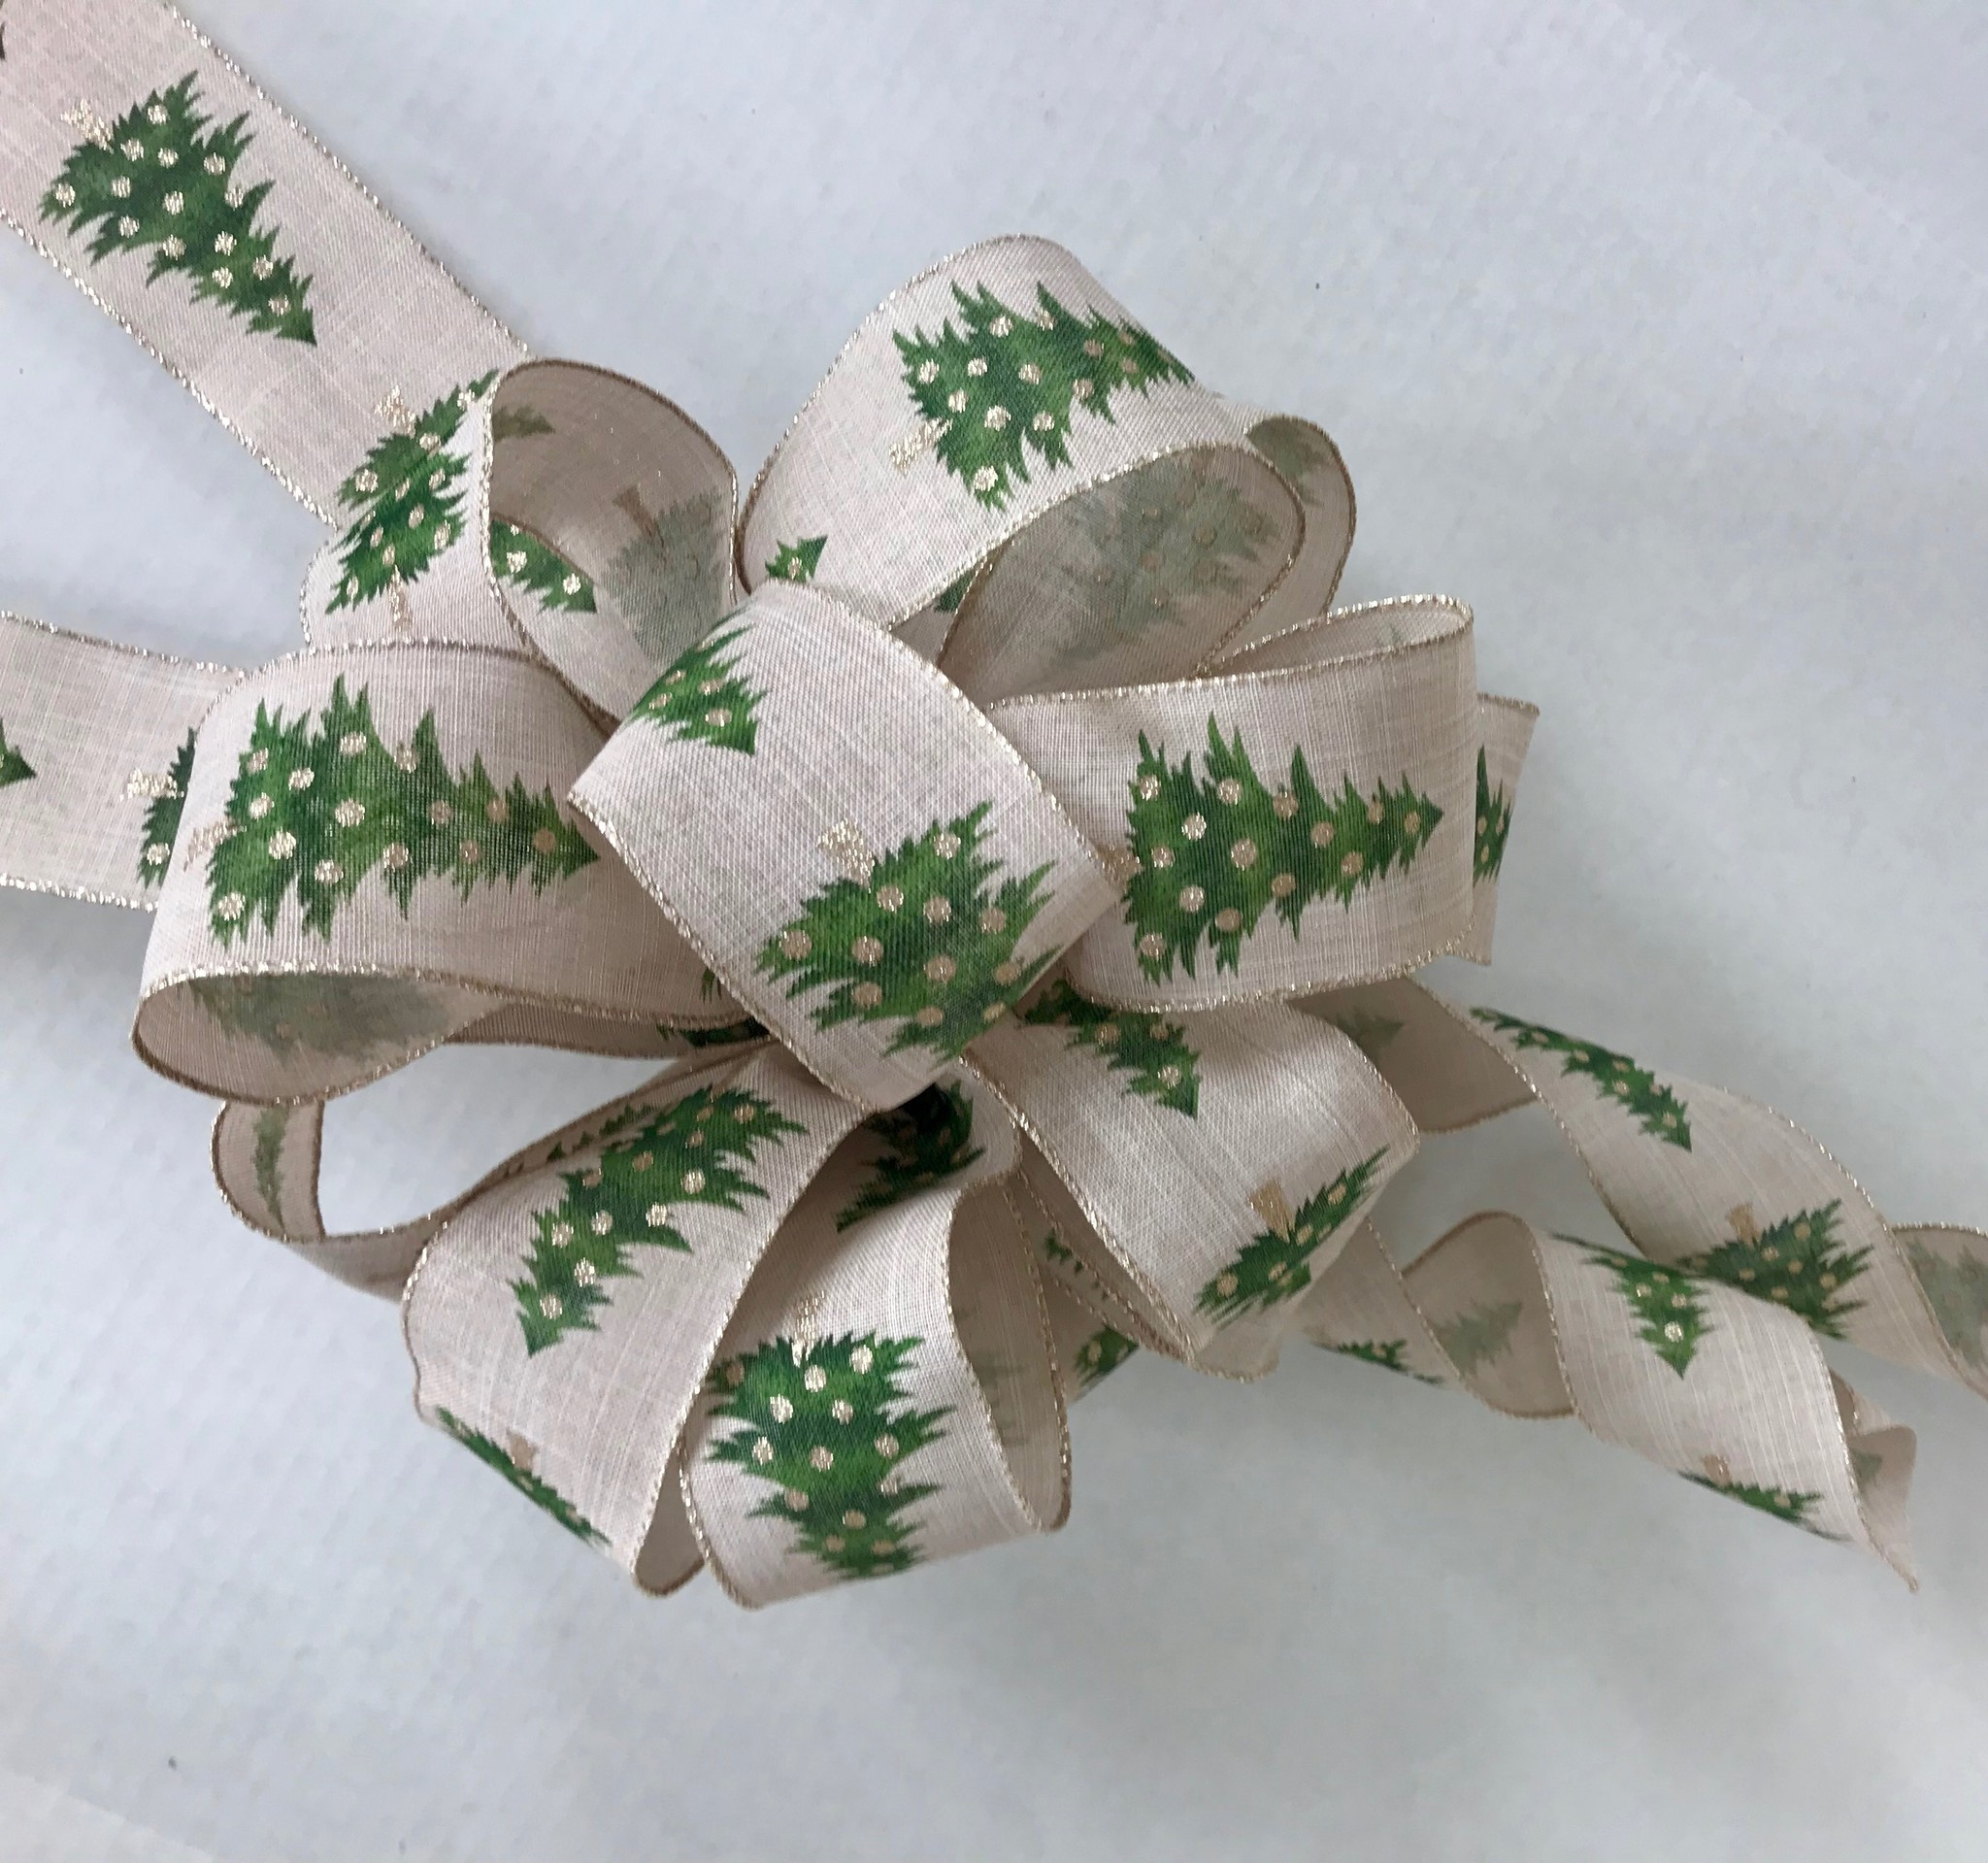 Bow Making Class, Friday October 25th  11:30am